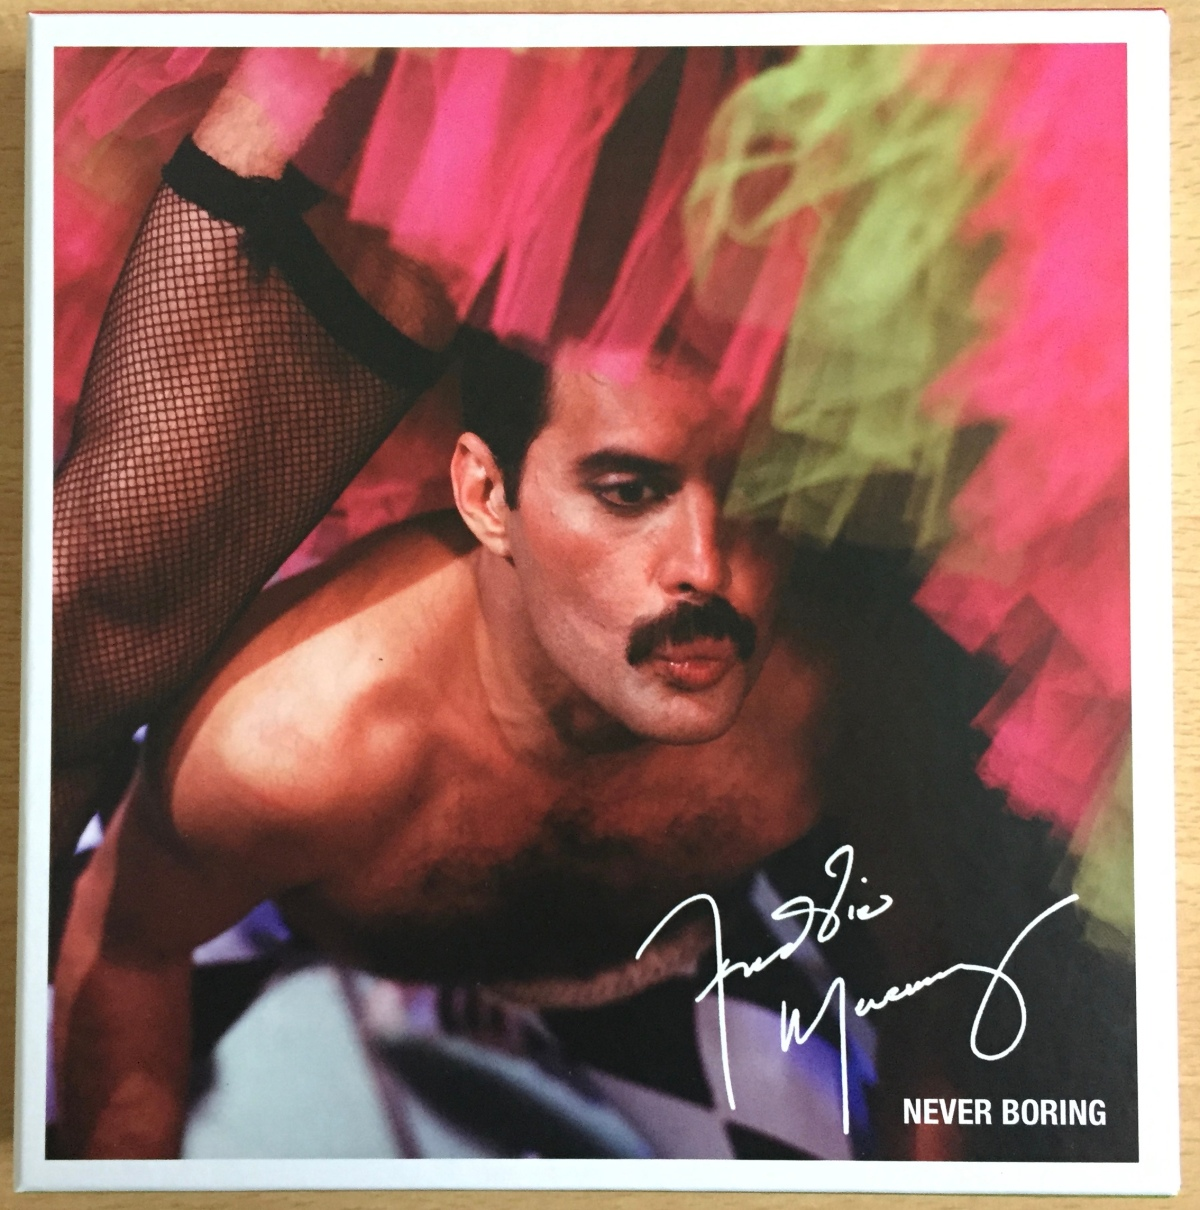 Freddie Mercury – Never Boring & Solo Collection – Box Set Reviews